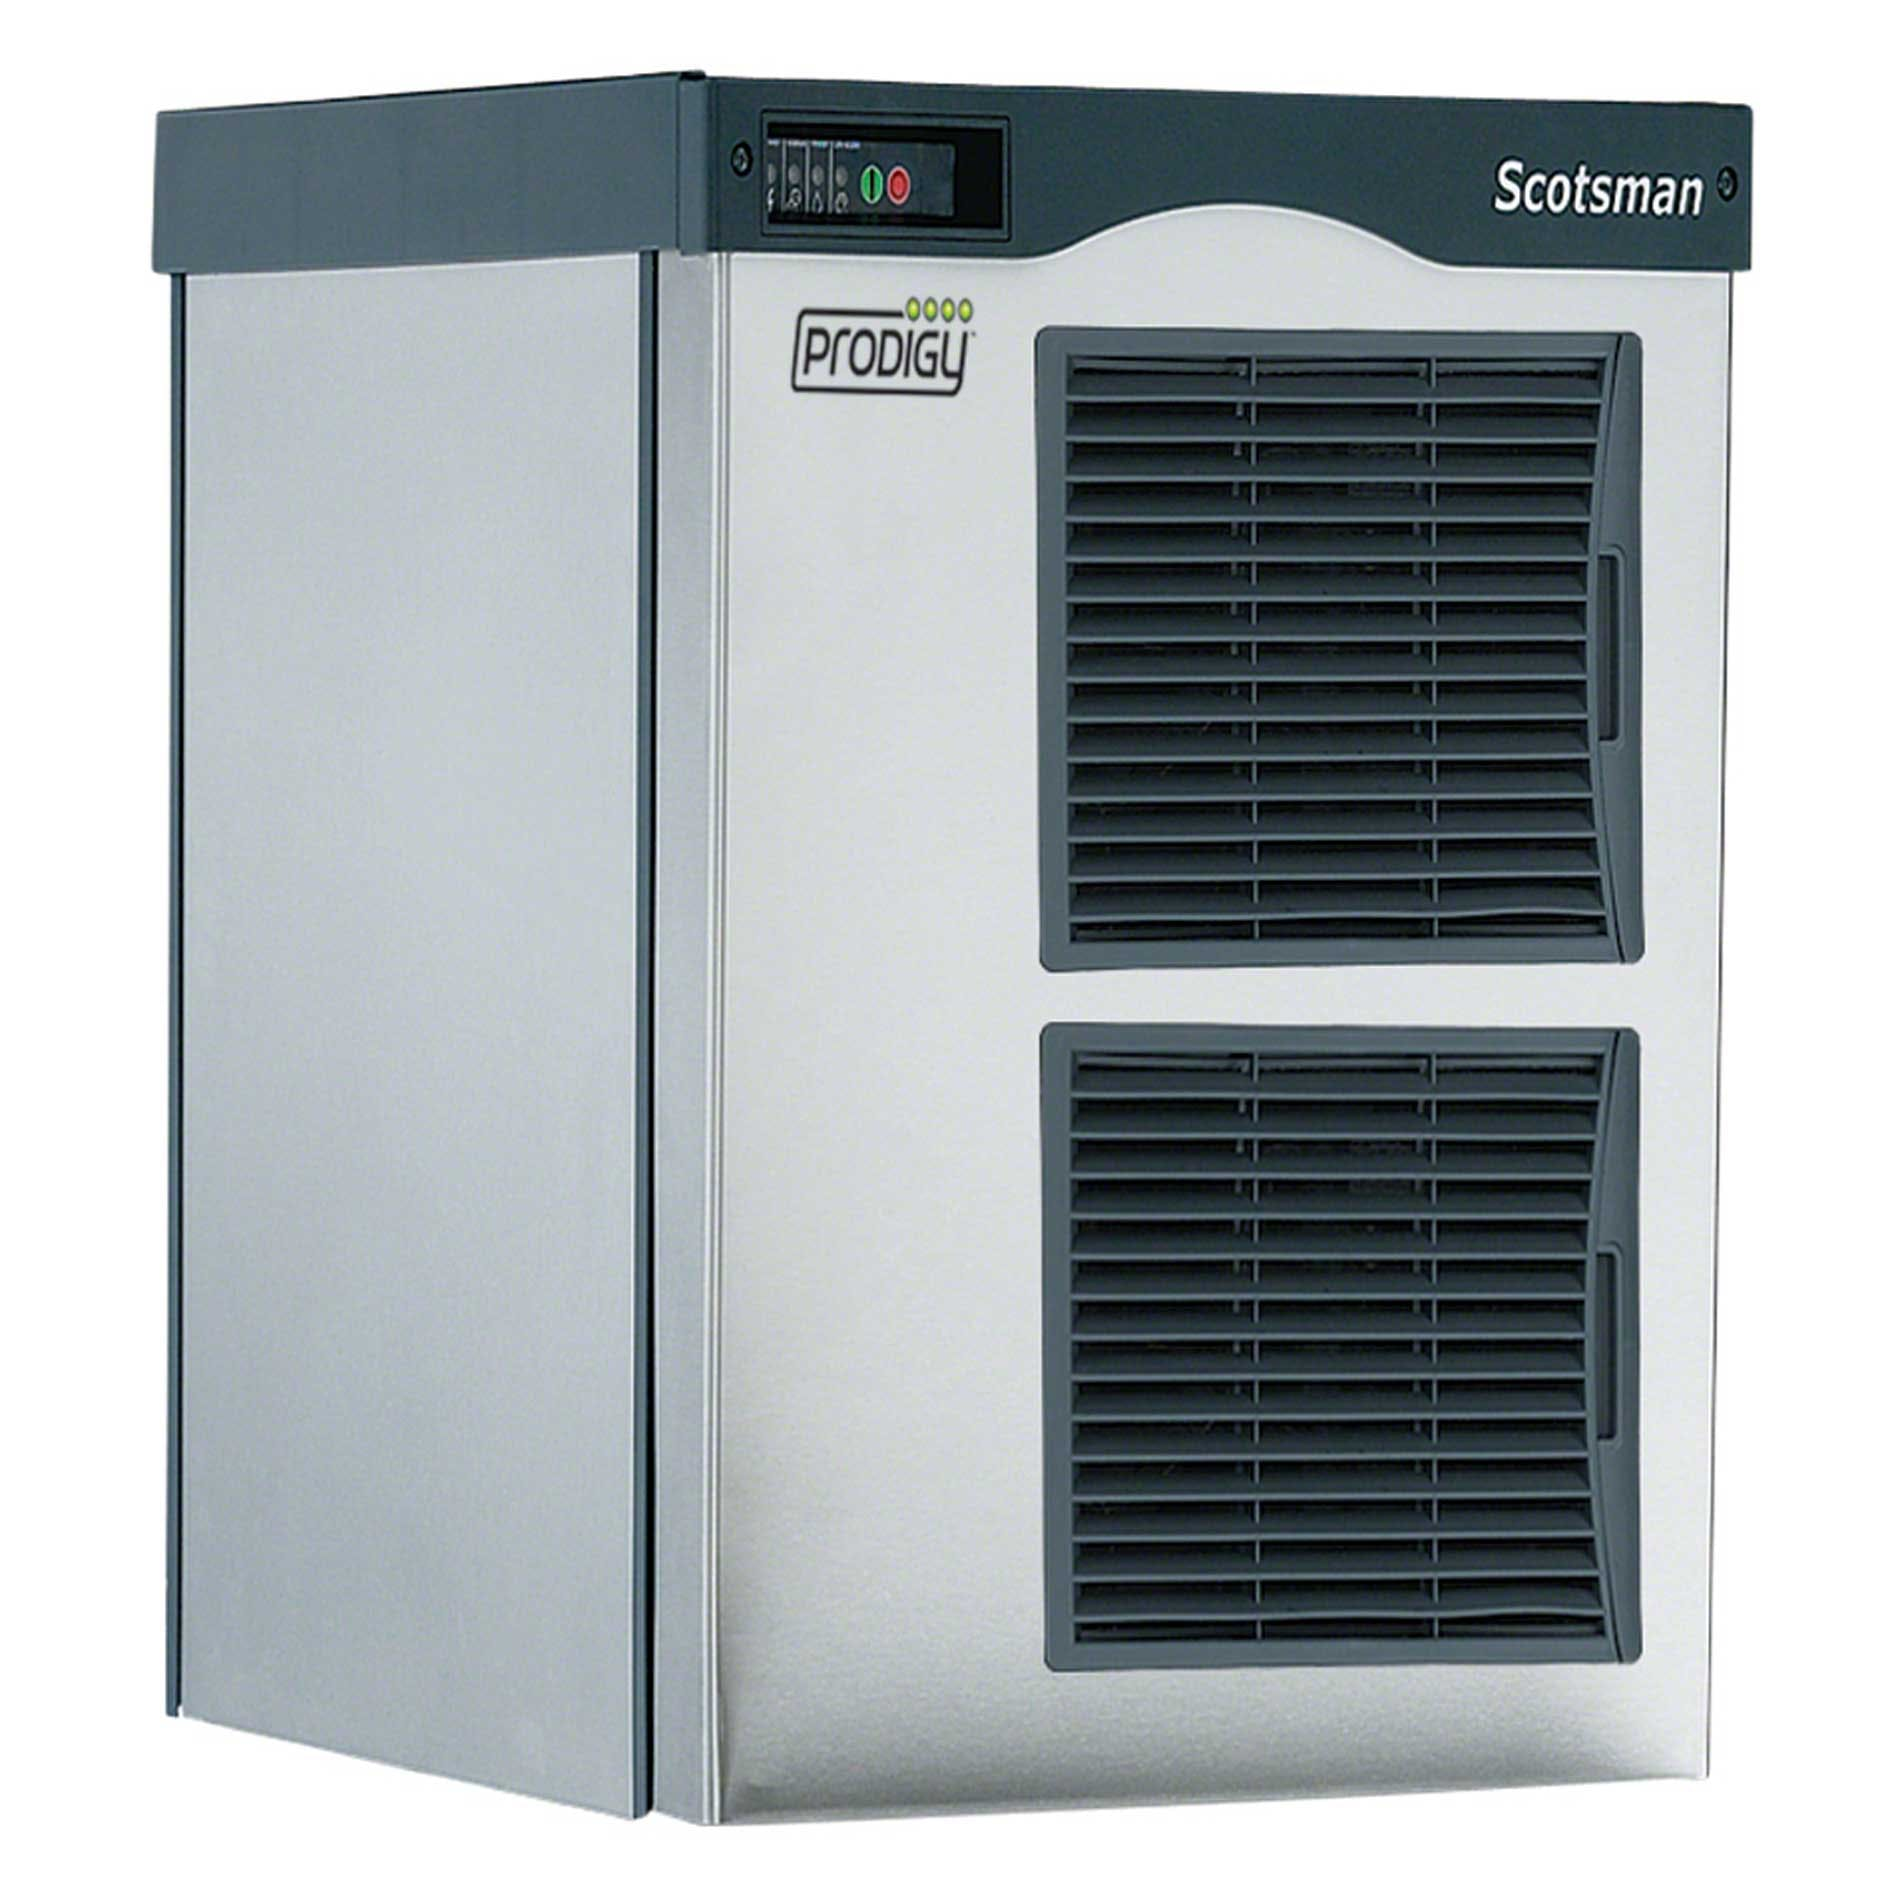 Scotsman - F1222A-3 1200 lb Prodigy® Flake Ice Machine Ice machine sold by Food Service Warehouse